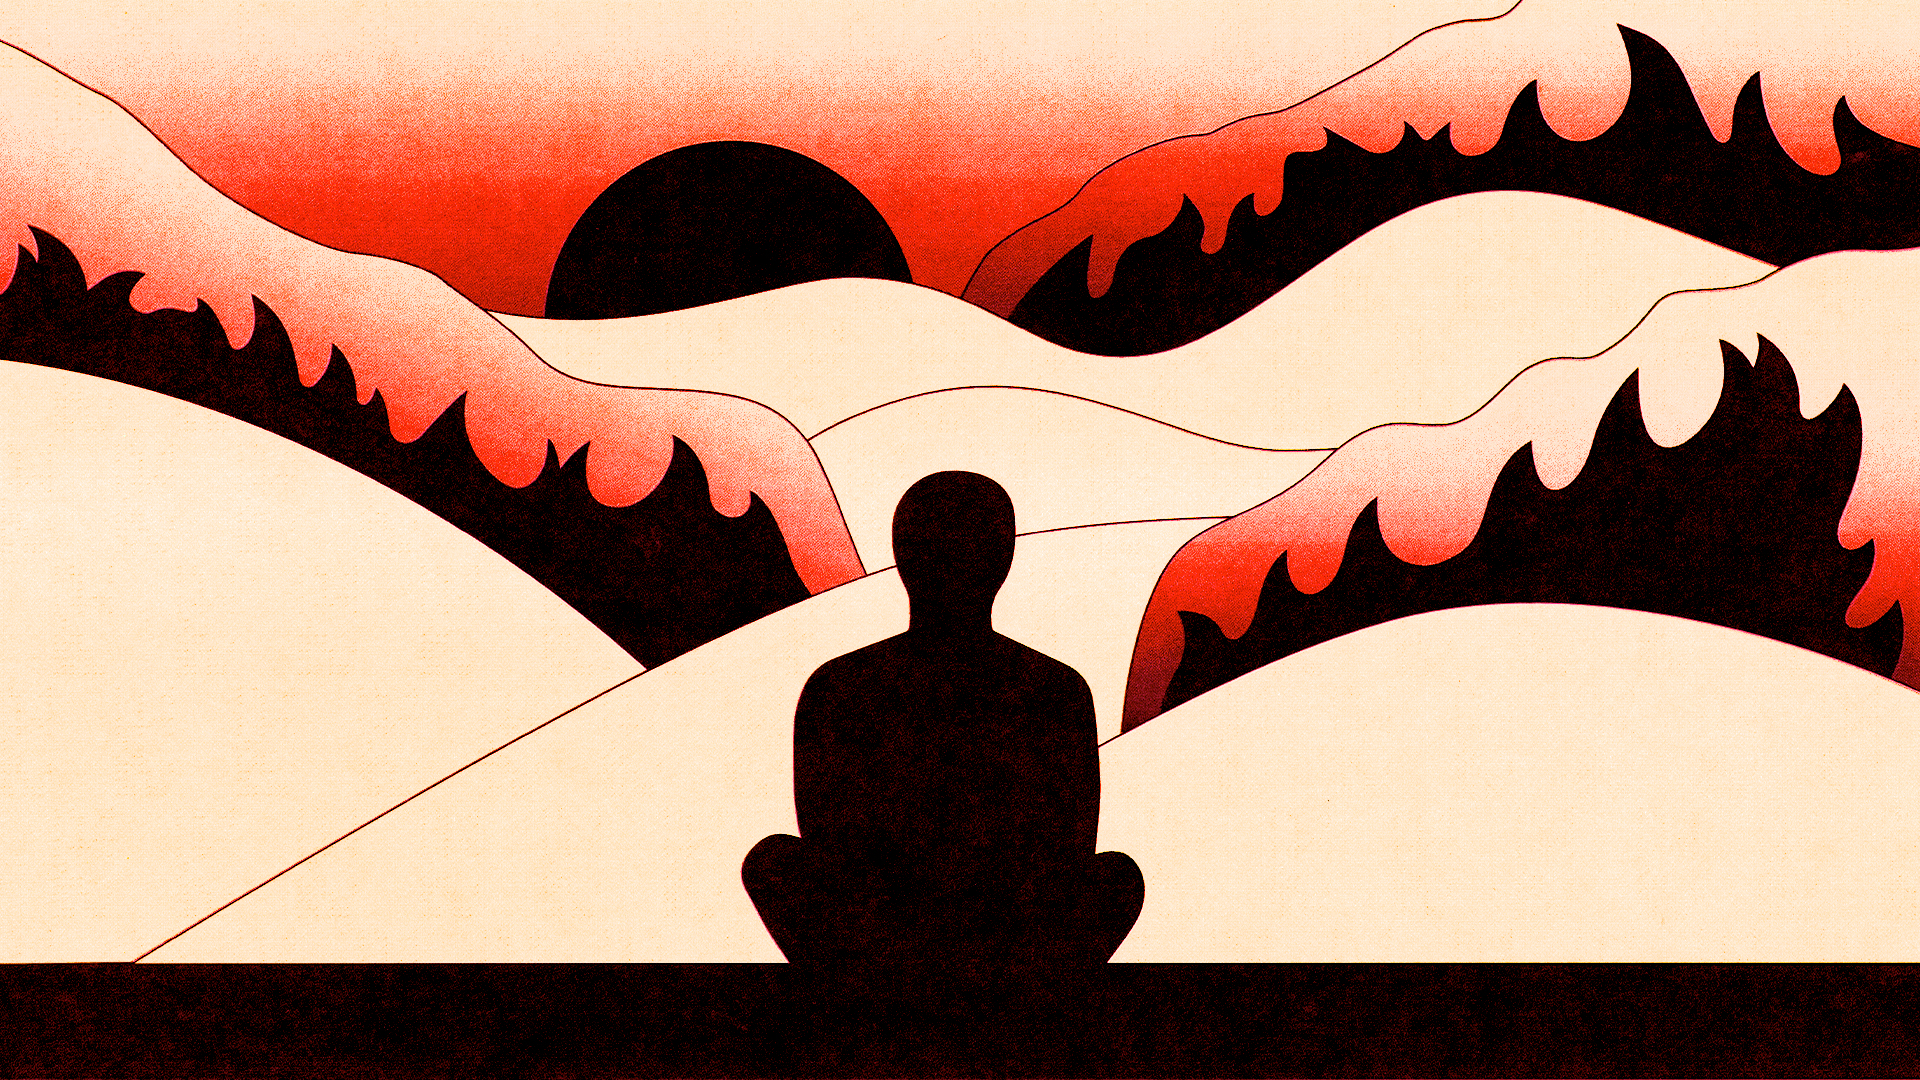 vice.com - Shayla Love - The Side Effects of Meditation No One Talks About